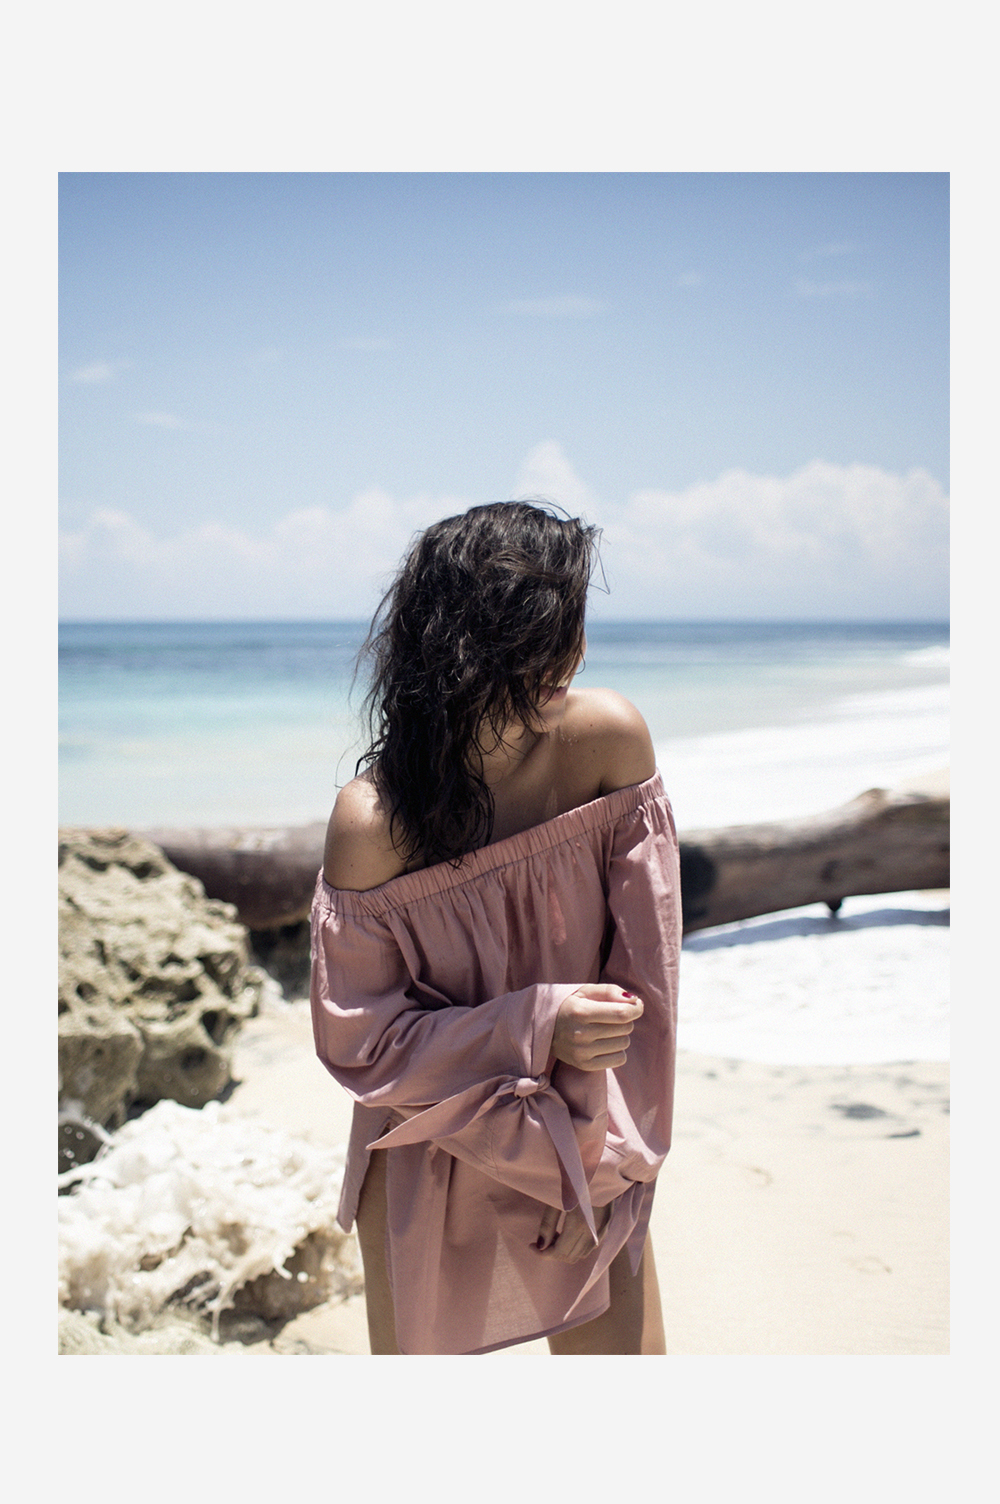 sania claus demina uluwatu dreamland beach bali nakd fashion top_5b